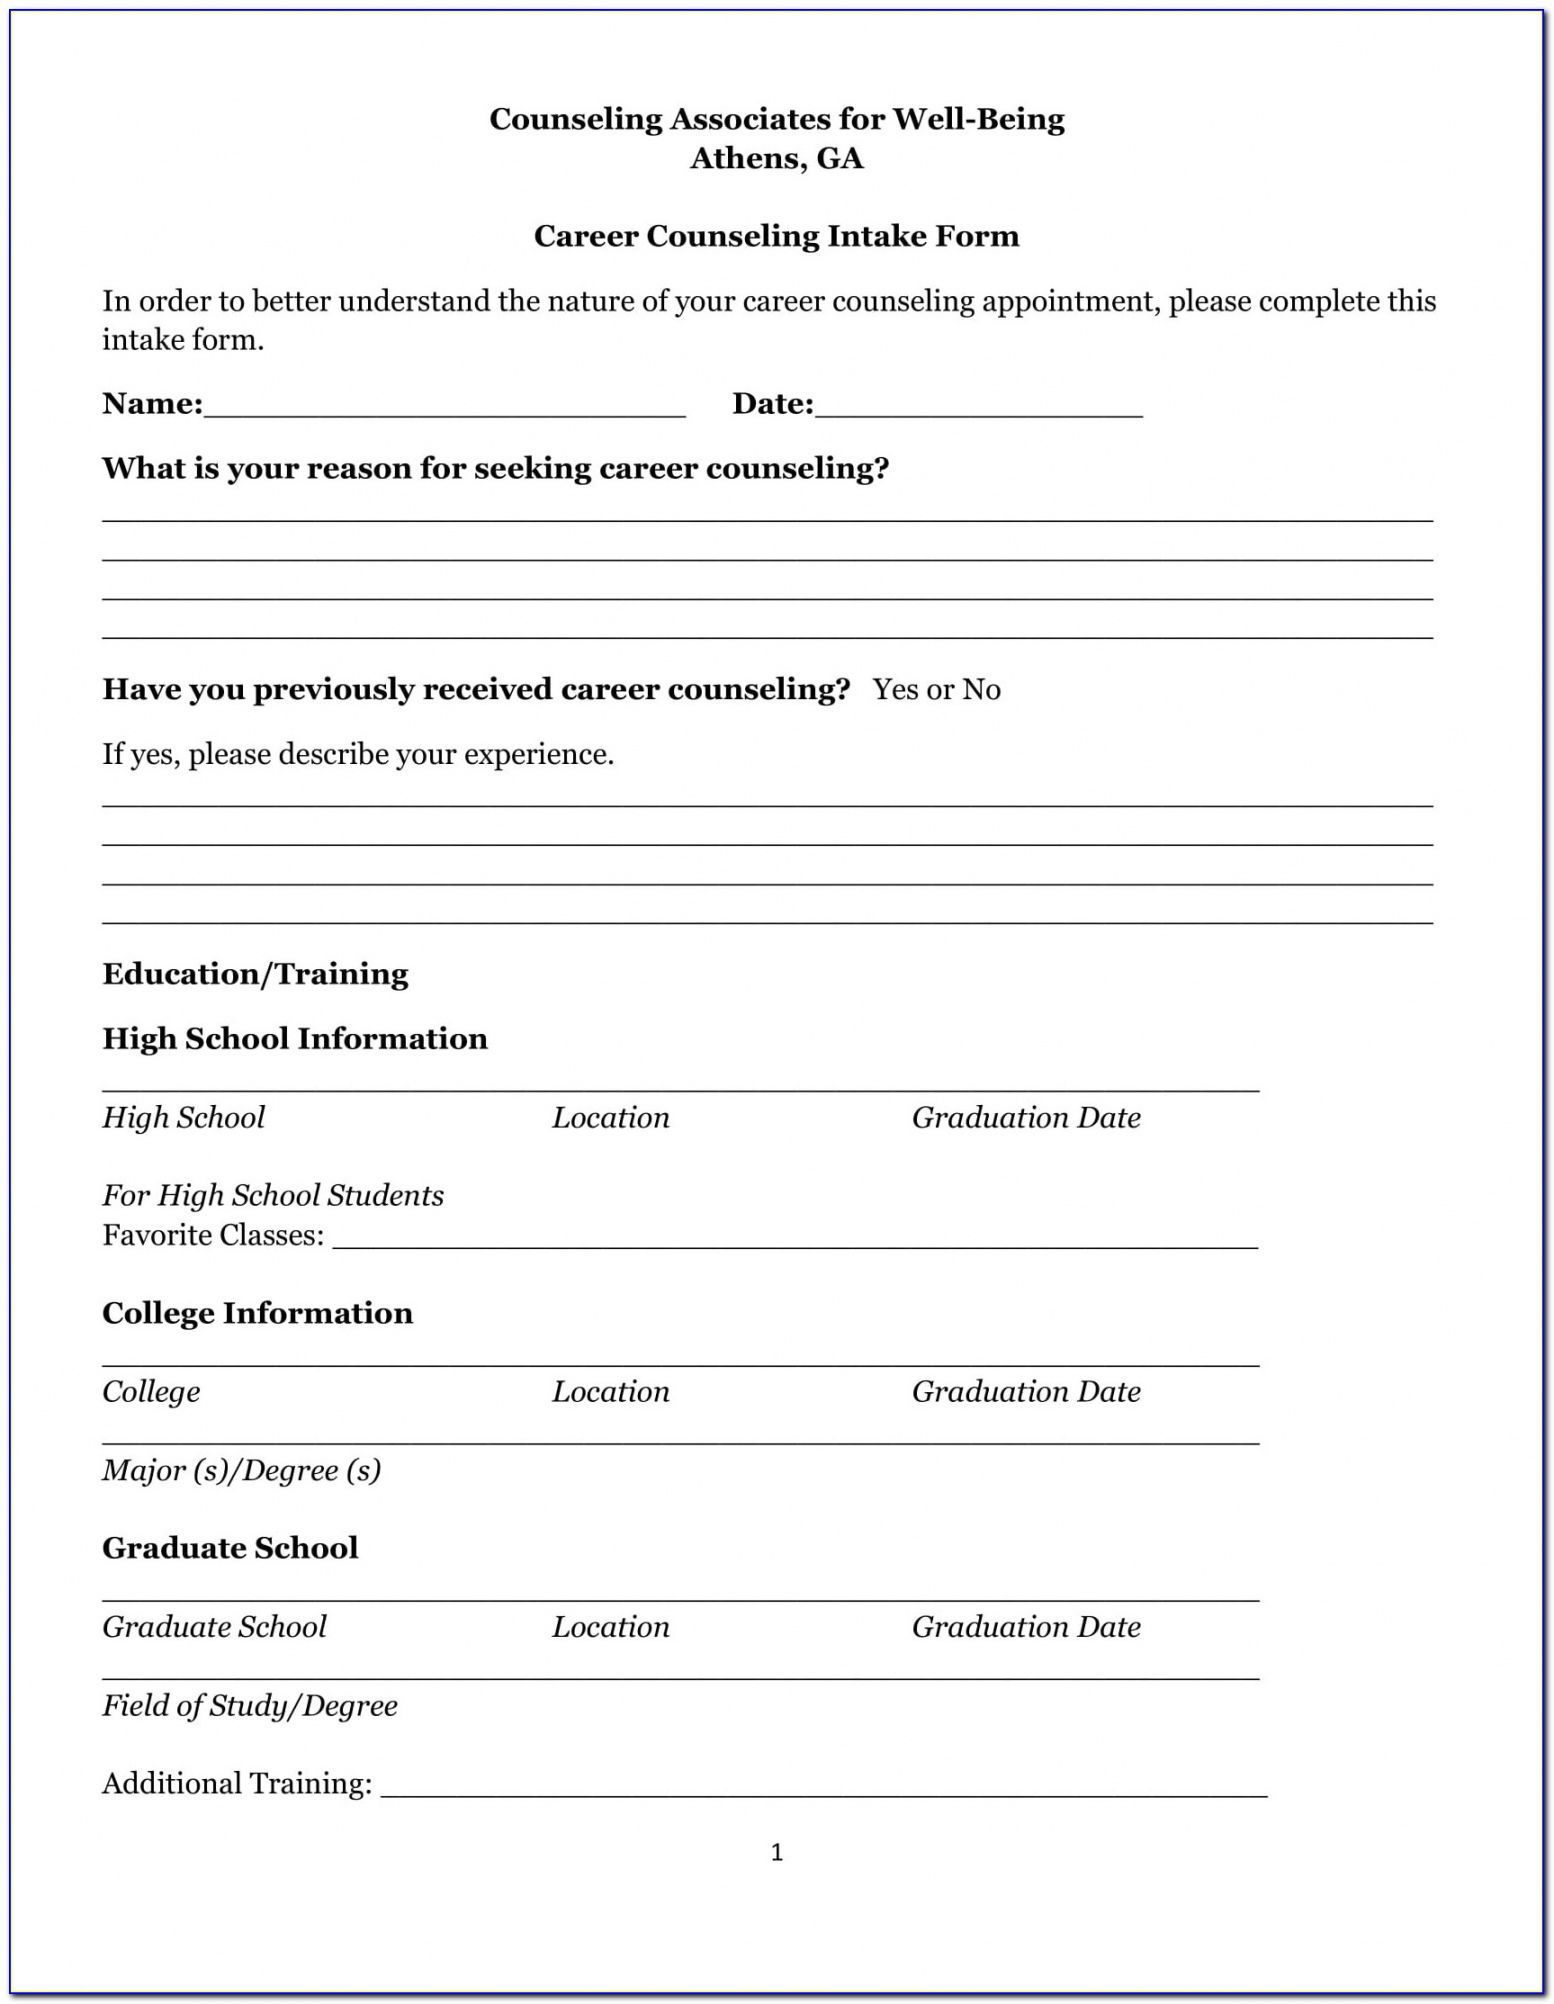 Explore Our Free Premarital Counseling Certificate Template Certificate Of Completion Template Premarital Counseling Certificate Template Premarital counseling certificate of completion template